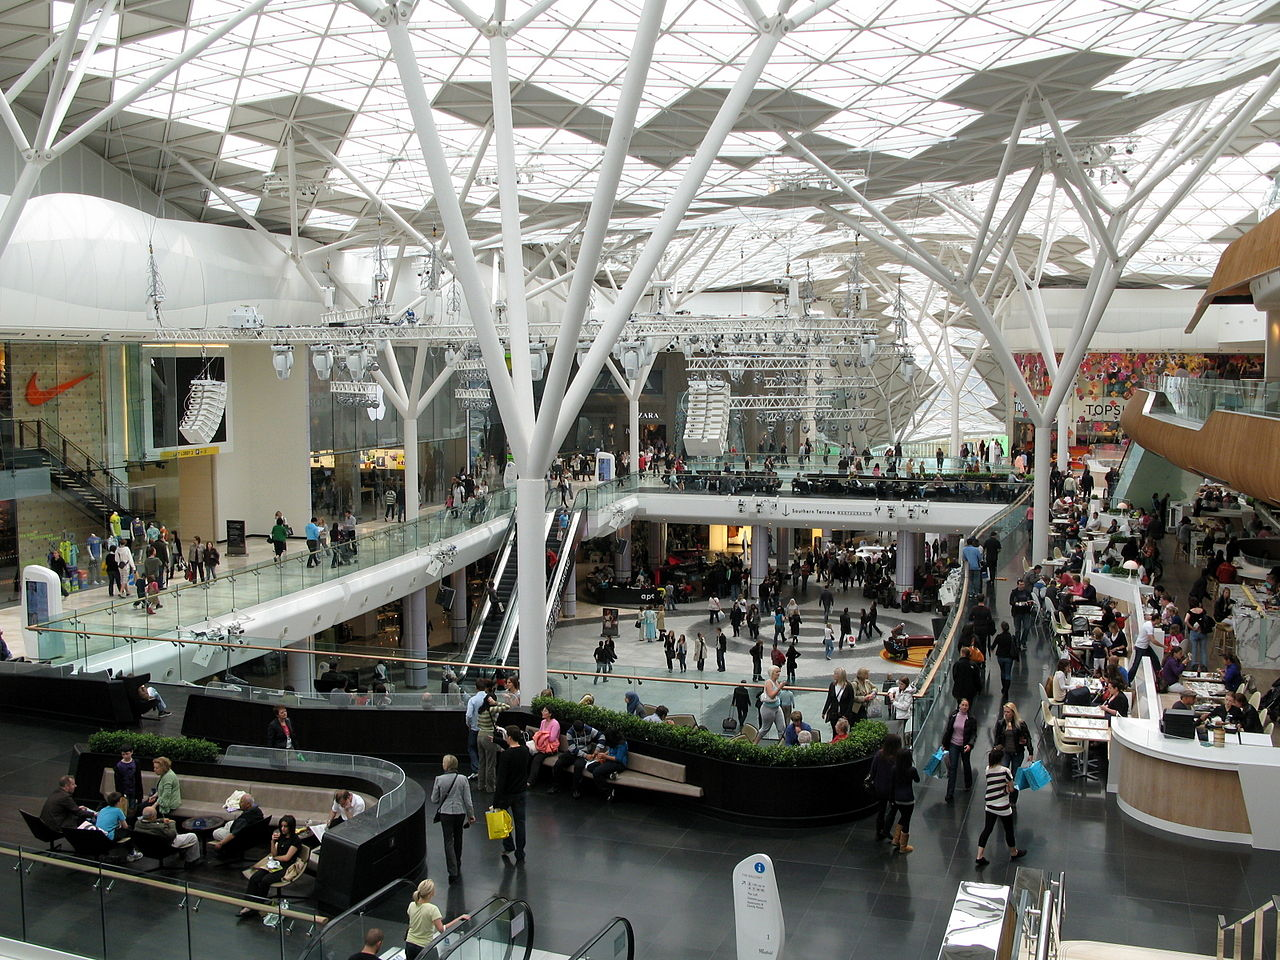 File Westfield London Main Atrium 2009 Jpg Wikimedia Commons